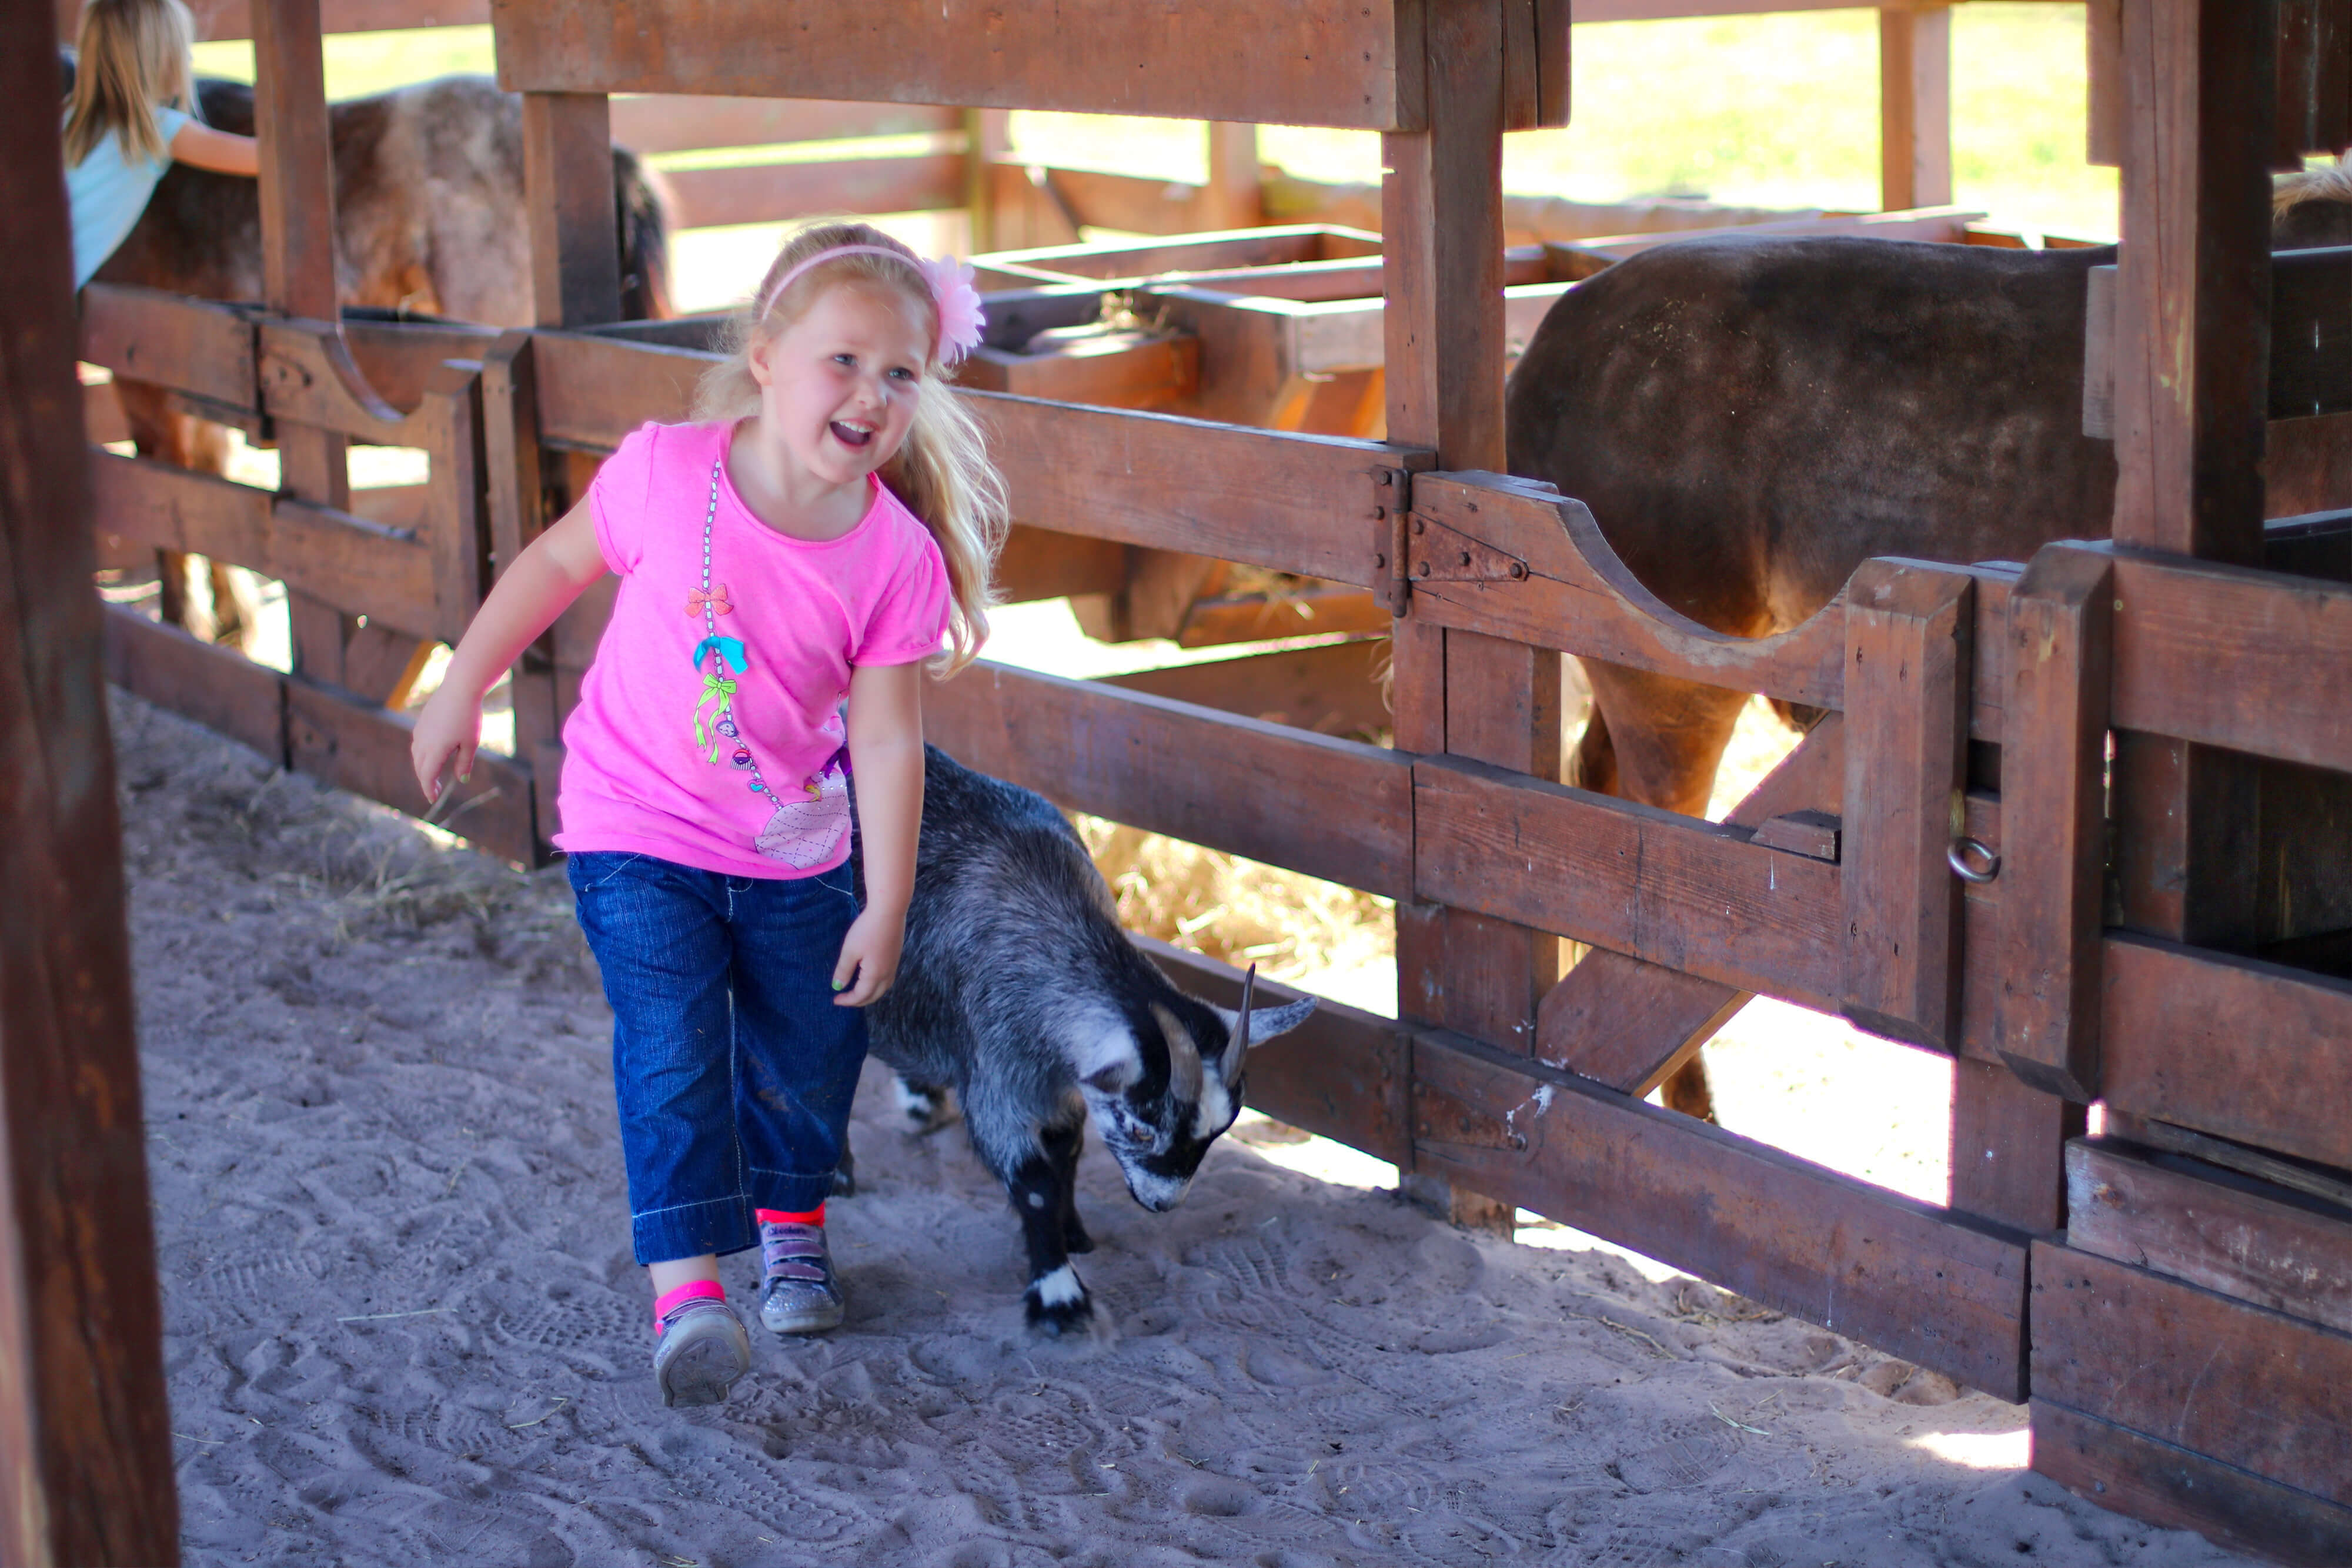 Kids Petting Zoo Near Orlando, FL |  Westgate River Ranch Resort & Rodeo | Westgate Resorts